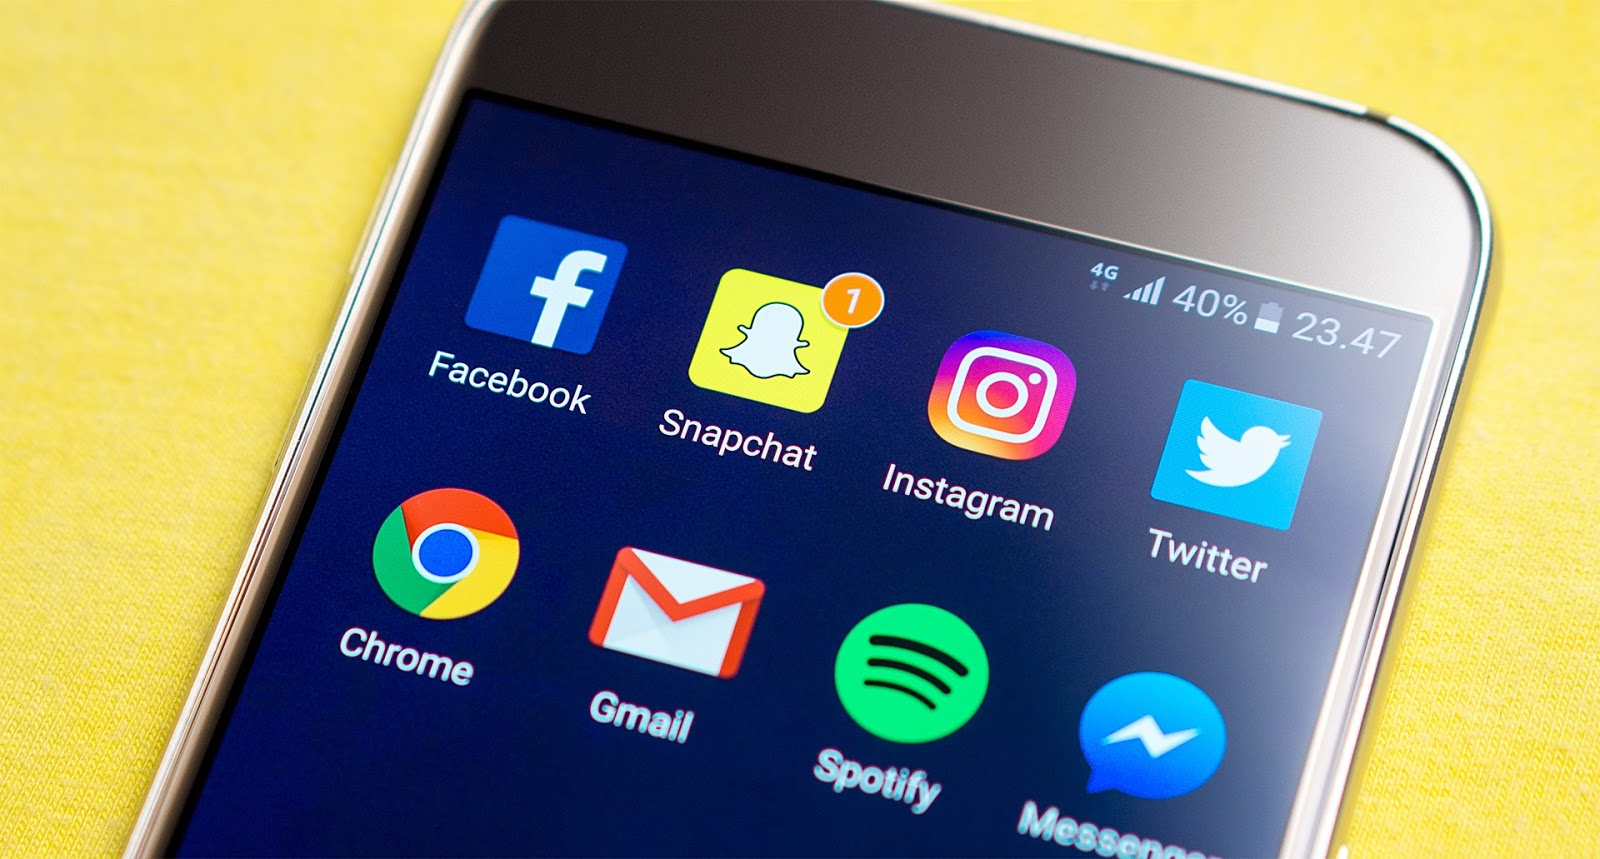 Up And Coming Social Media Trends Driven By Millennials And Generation Z